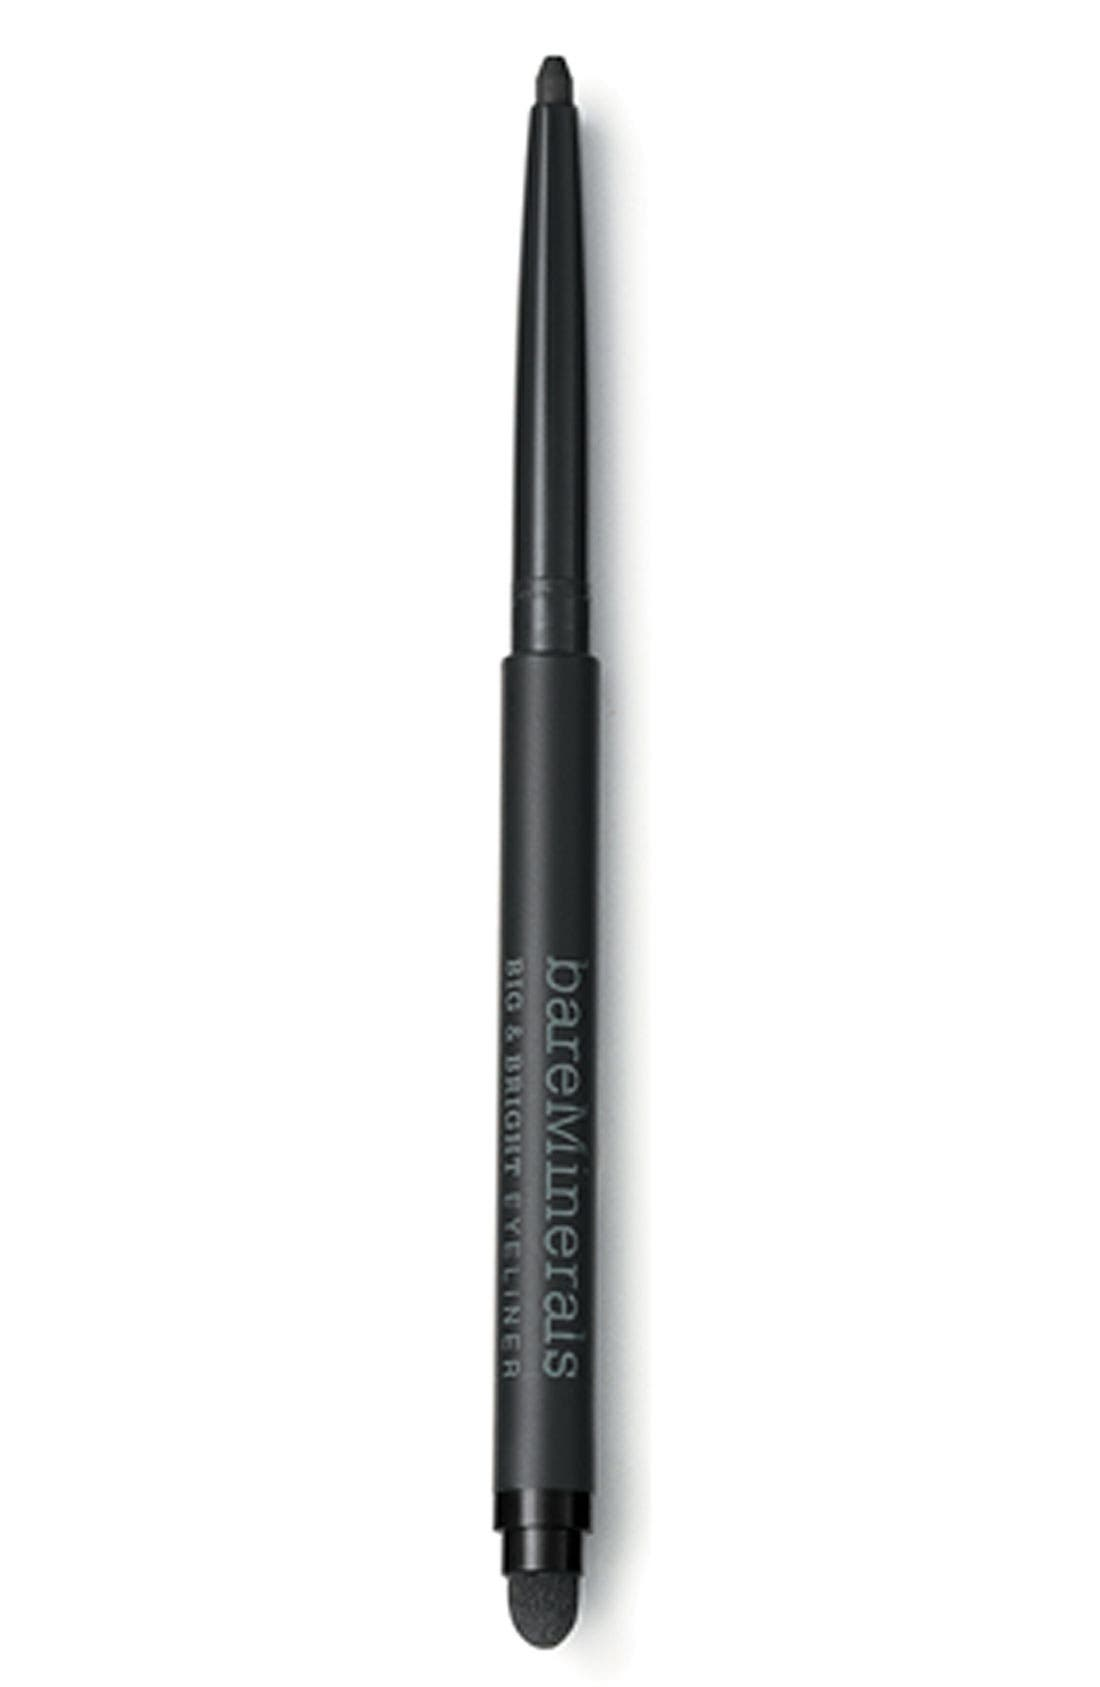 BAREMINERALS<SUP>®</SUP> Bare Escentuals<sup>®</sup> bareMinerals<sup>®</sup> 'Big & Bright' Eyeliner Pencil, Main, color, 001